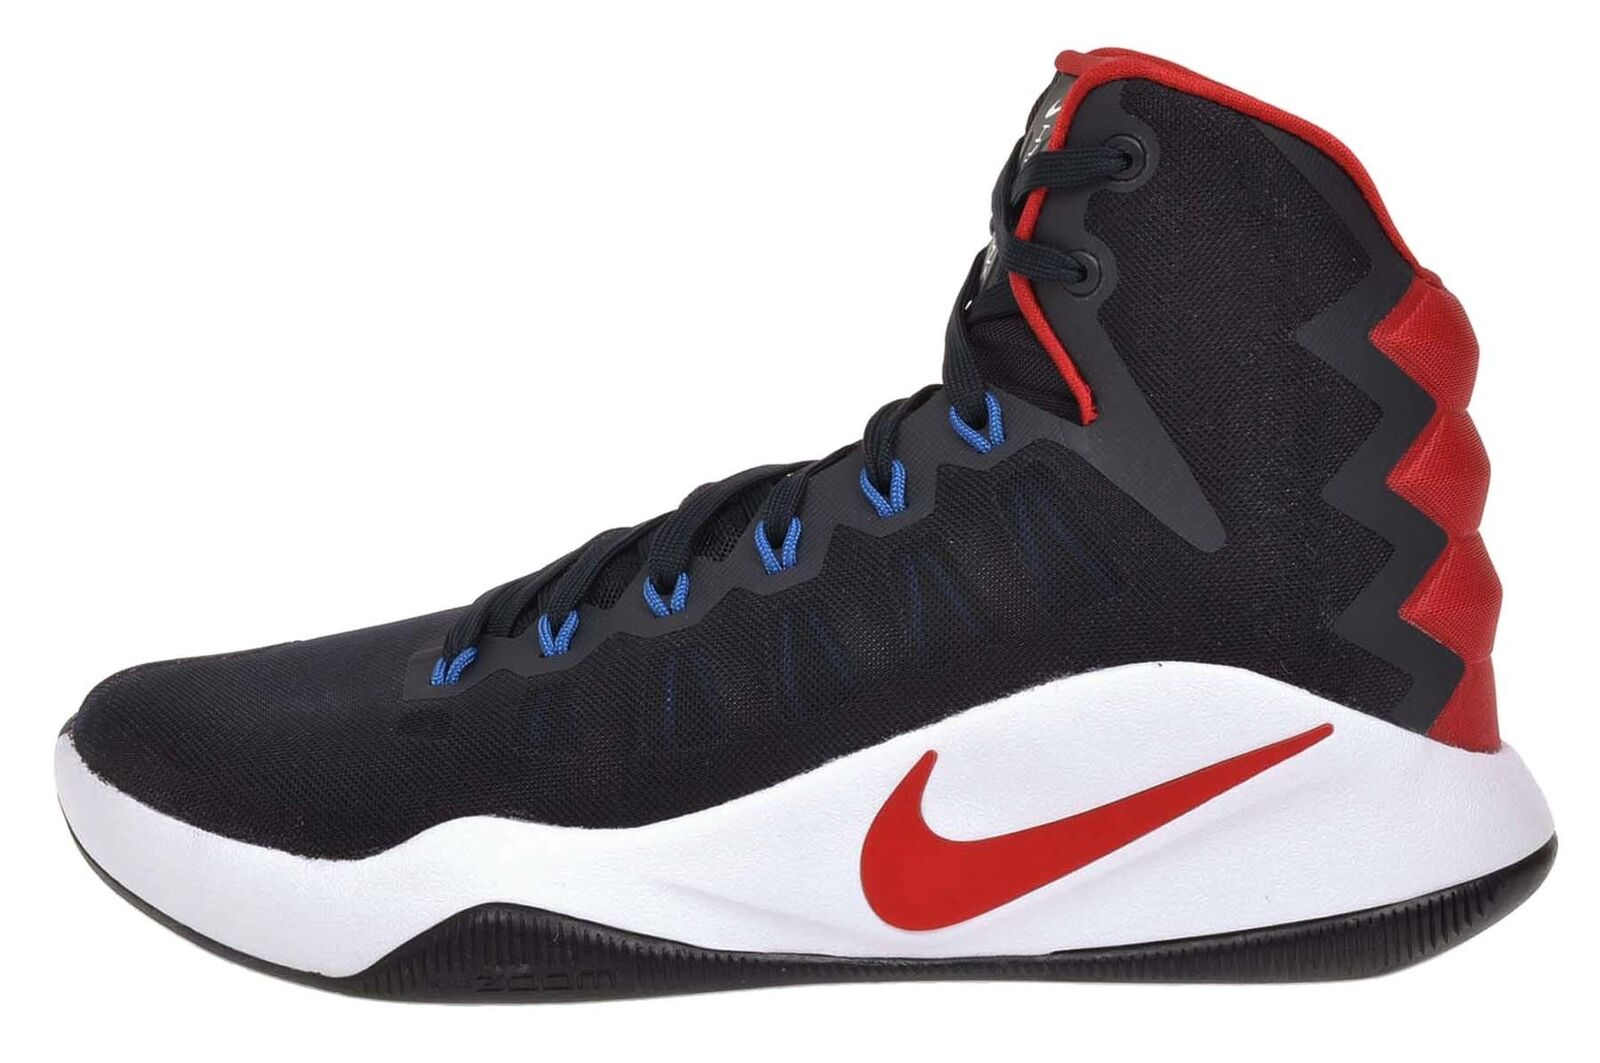 Cheap and beautiful fashion NIKE Hyperdunk 2018 USA Men Basketball Shoes New Obsidian New 844359-446 Comfortable